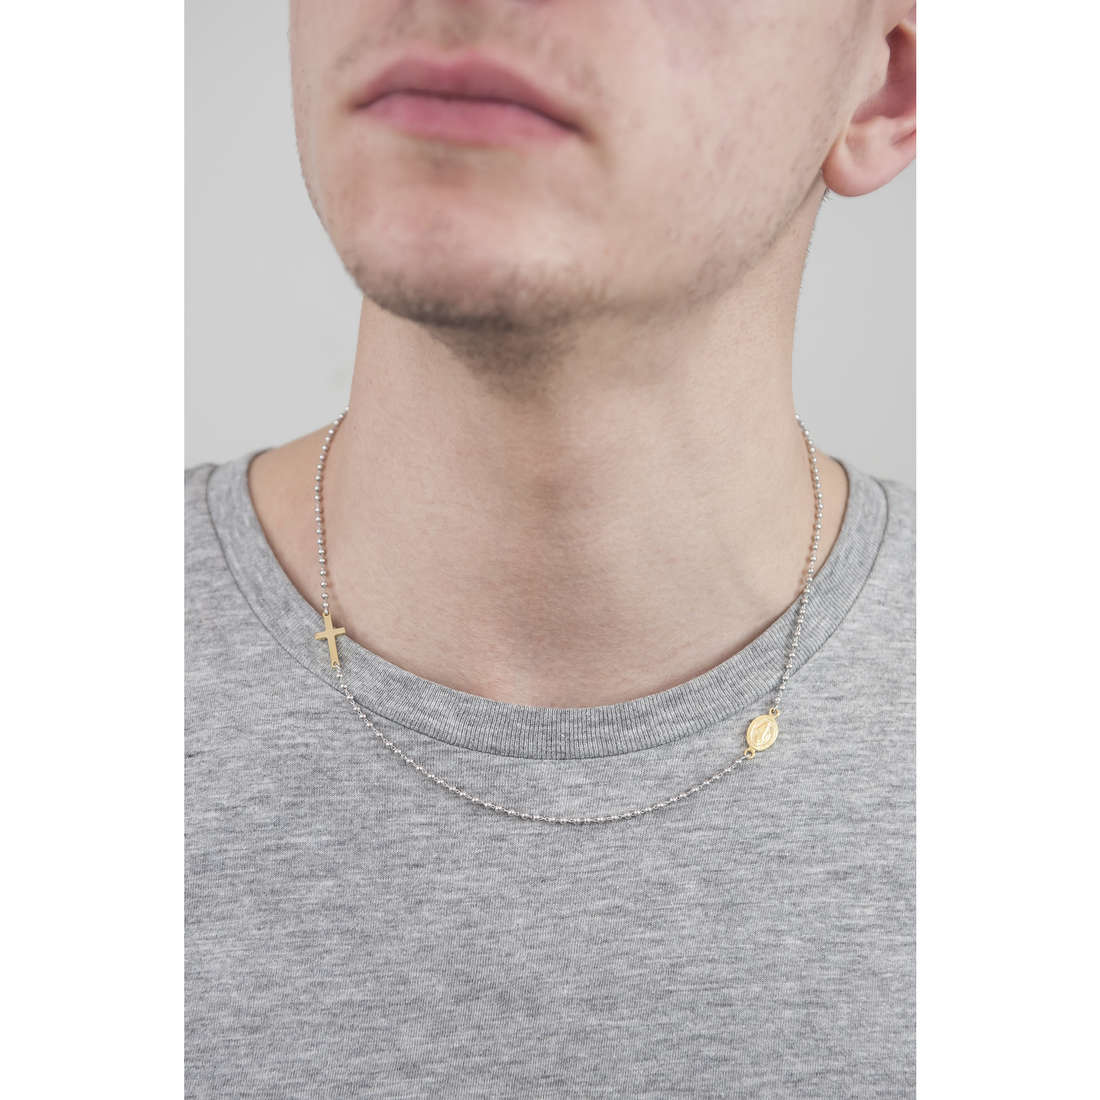 Cesare Paciotti colliers homme JPCL1239B indosso